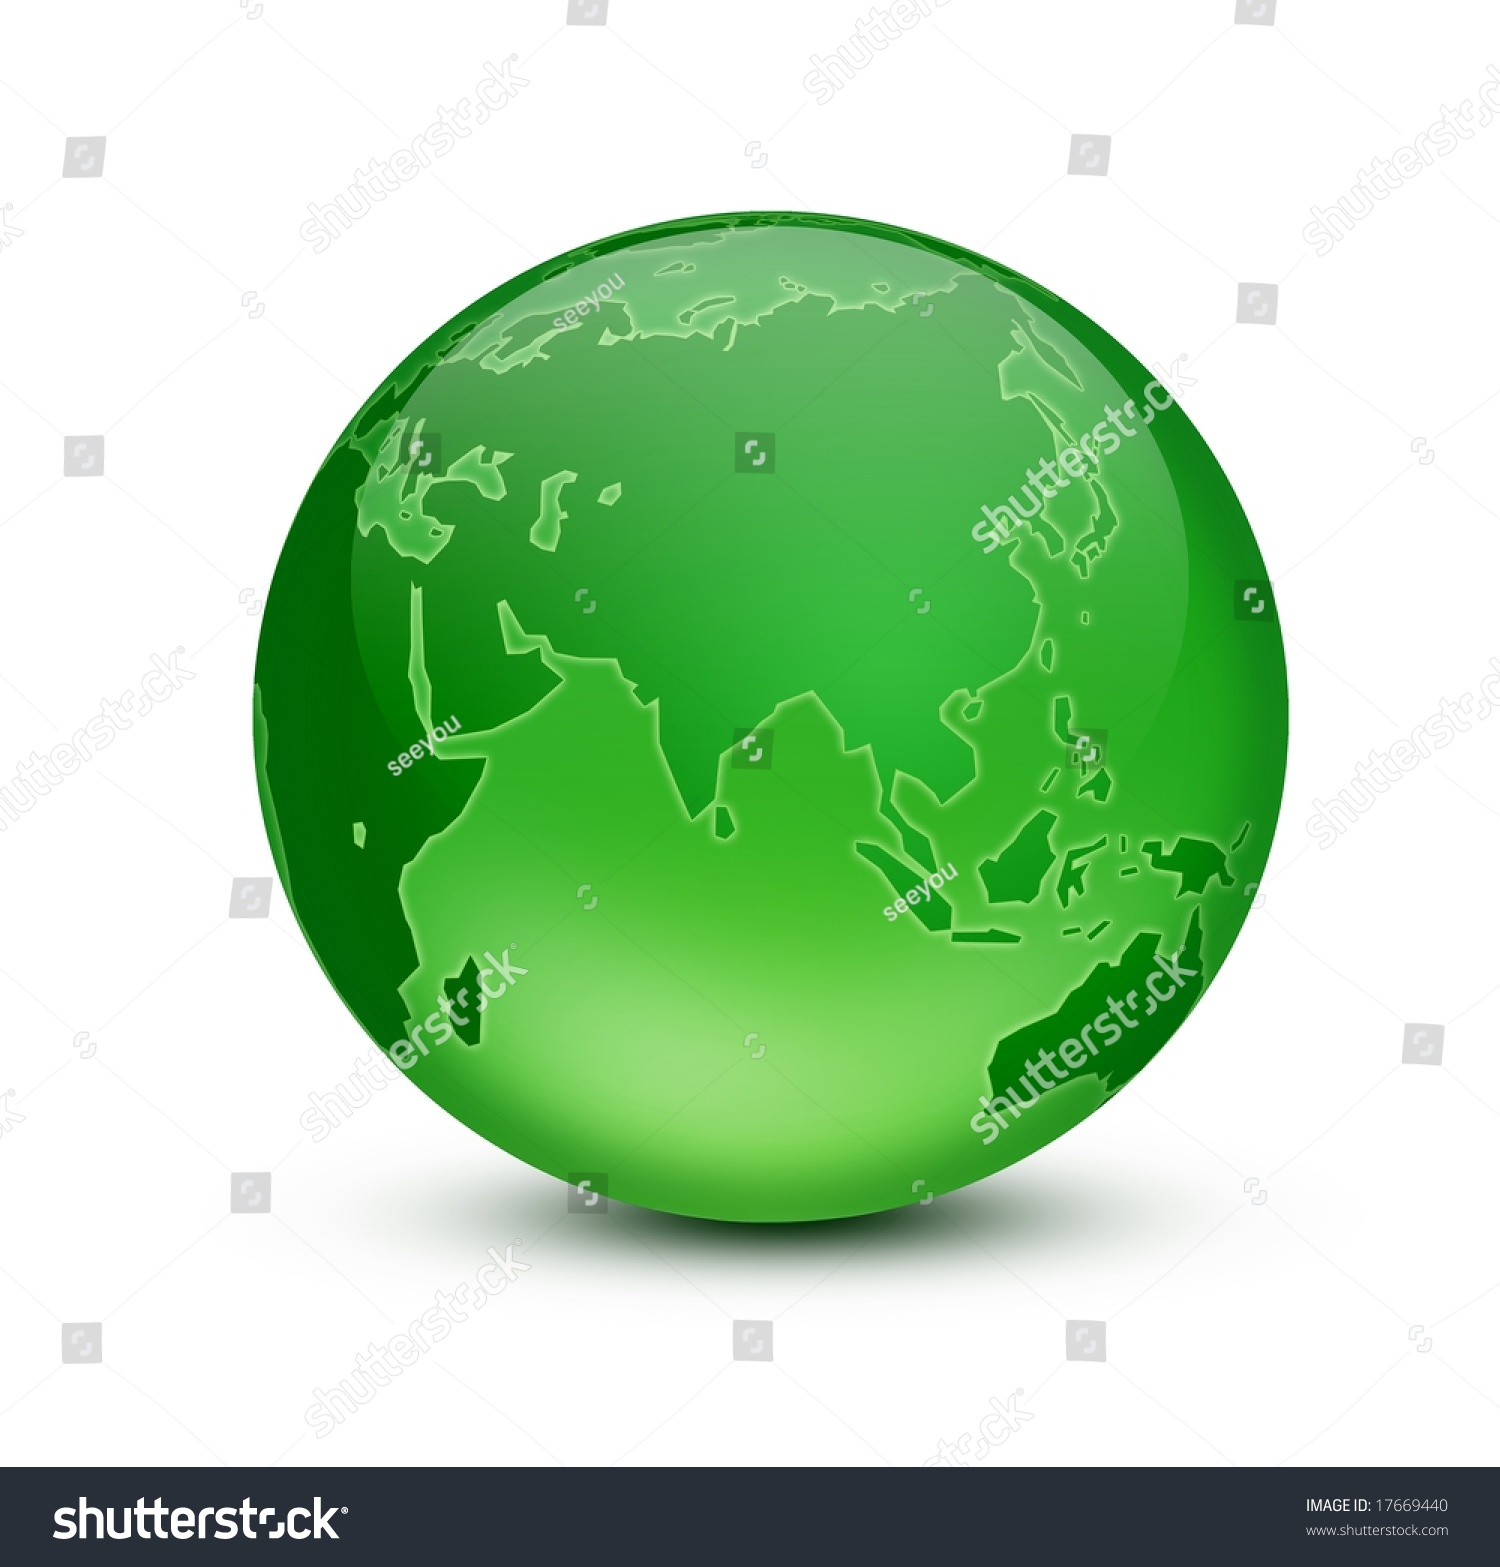 Green Earth Stock Photo 17669440 : Shutterstock